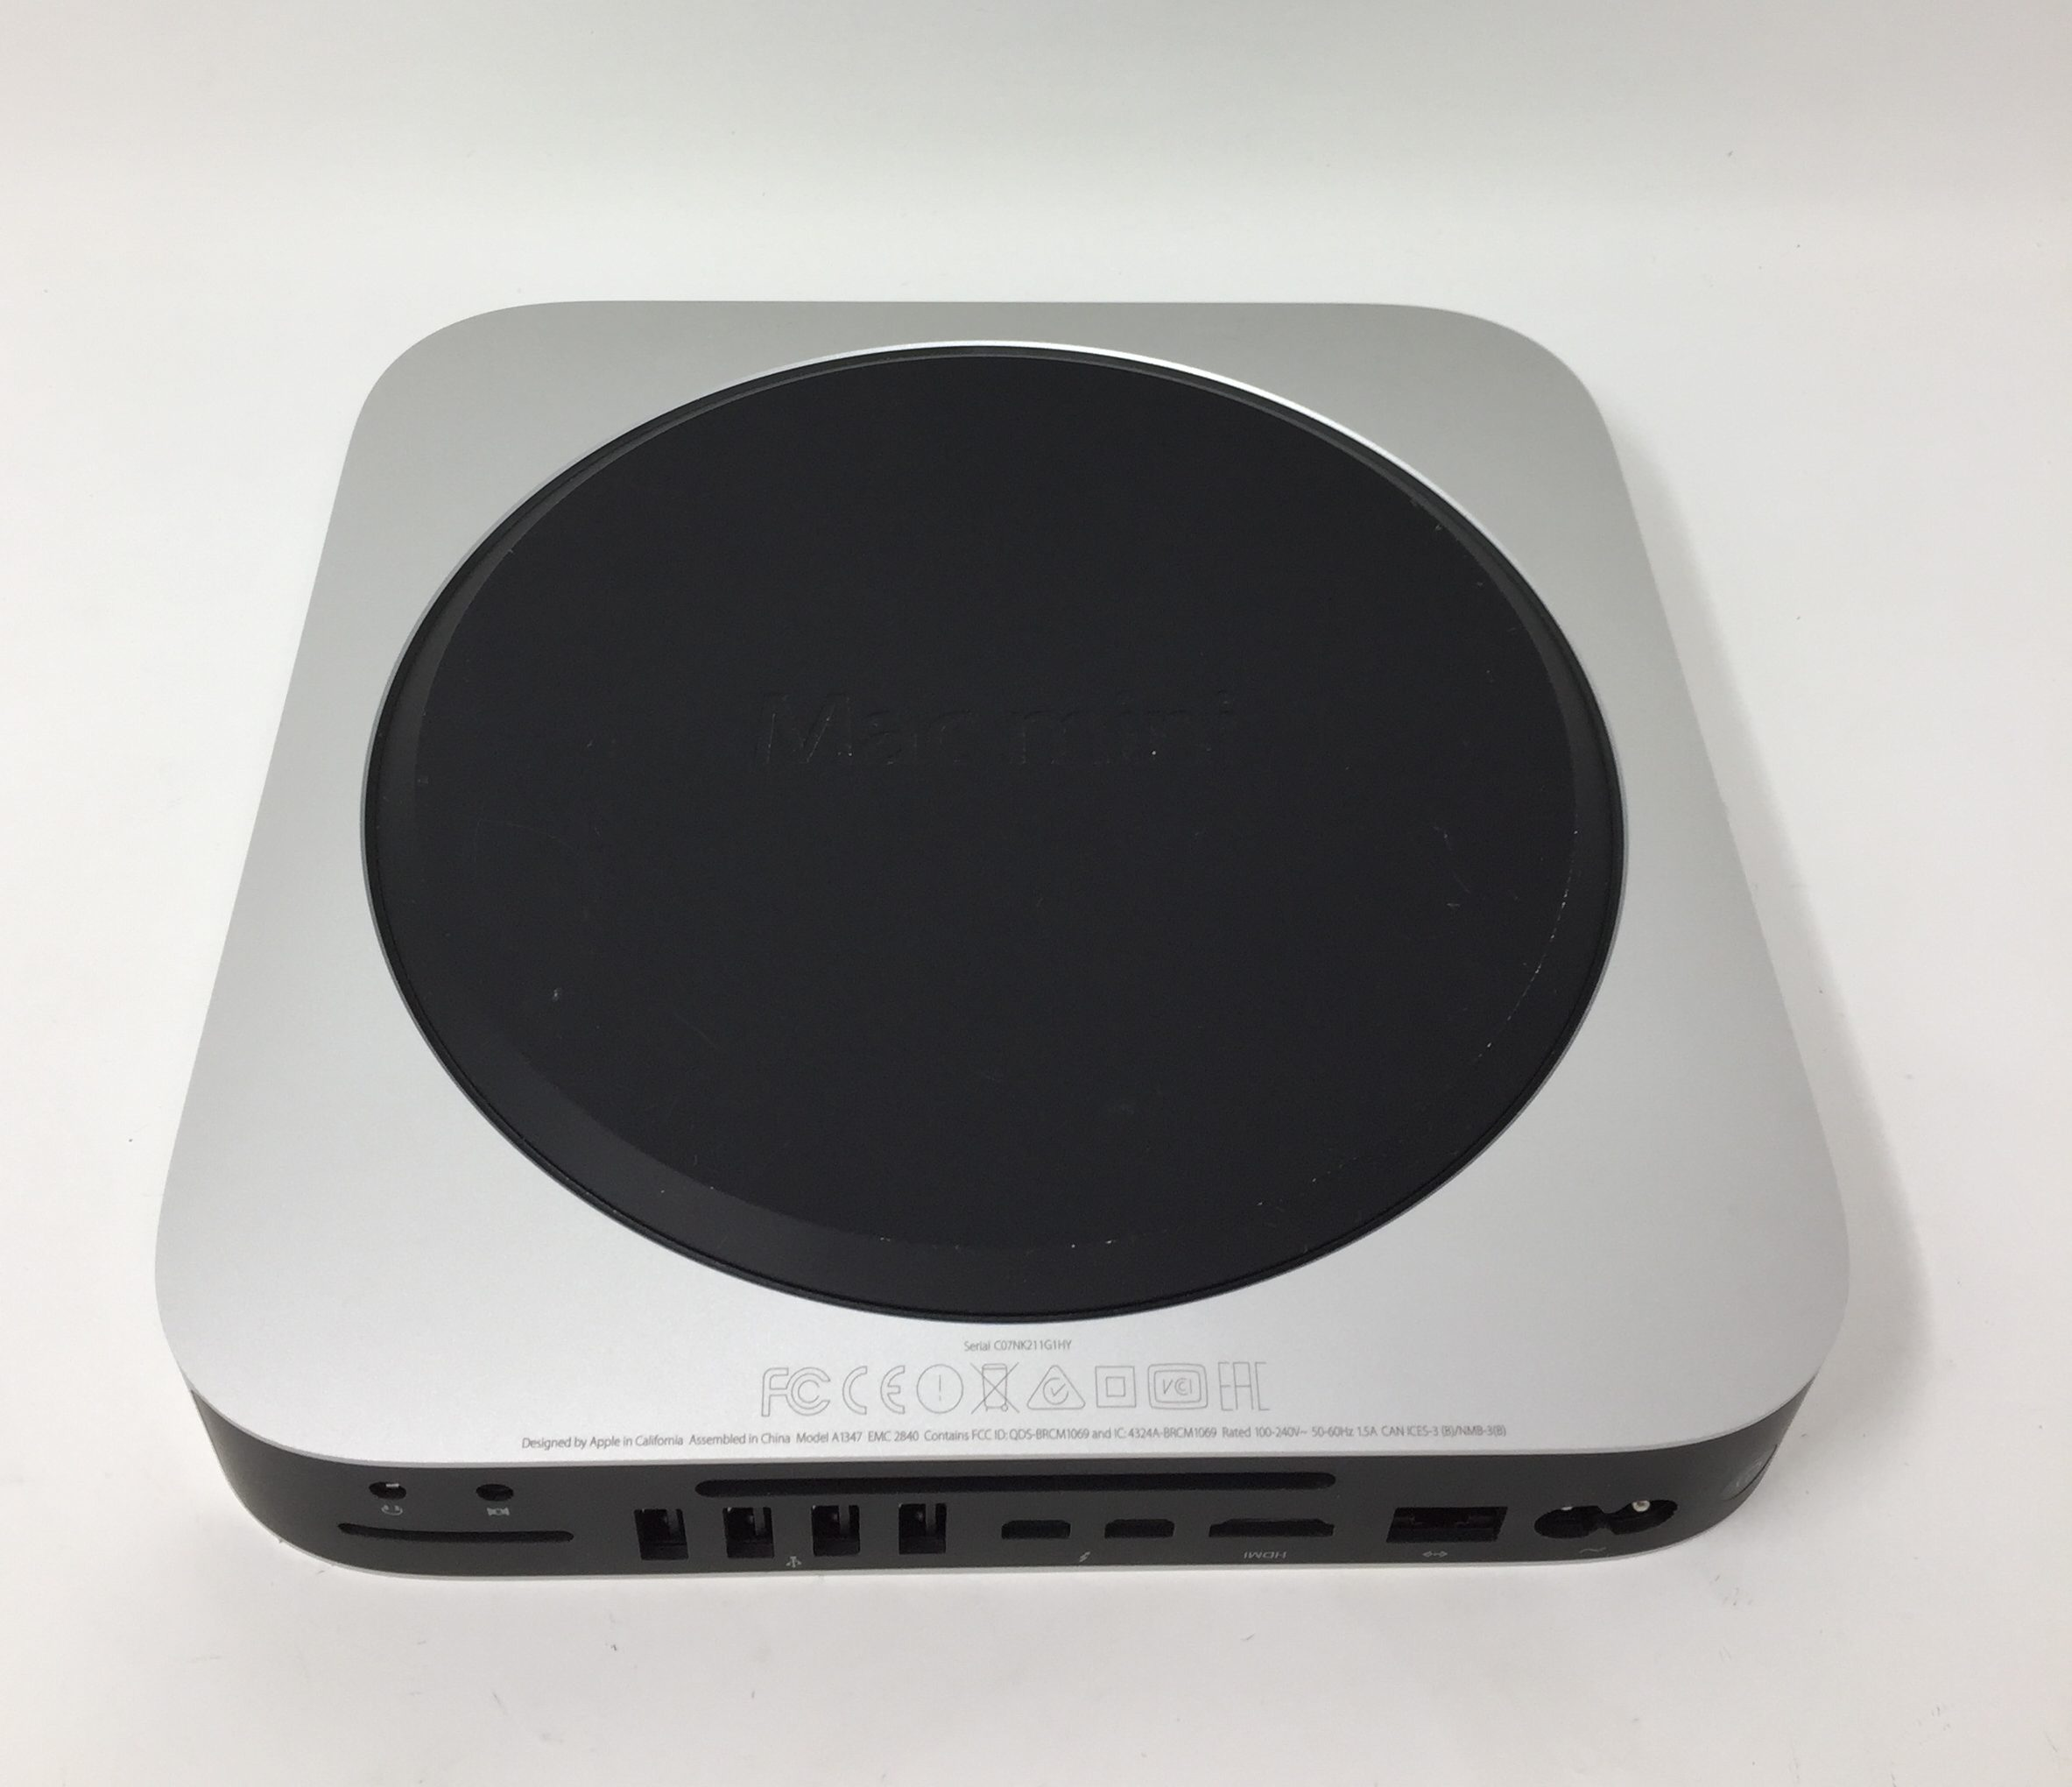 Mac Mini Late 2014 (Intel Core i5 2.8 GHz 8 GB RAM 1 TB Fusion Drive), Intel Core i5 2.8 GHz, 8 GB RAM, Fusion 1 TB HDD Y 128 GB SSD, obraz 4